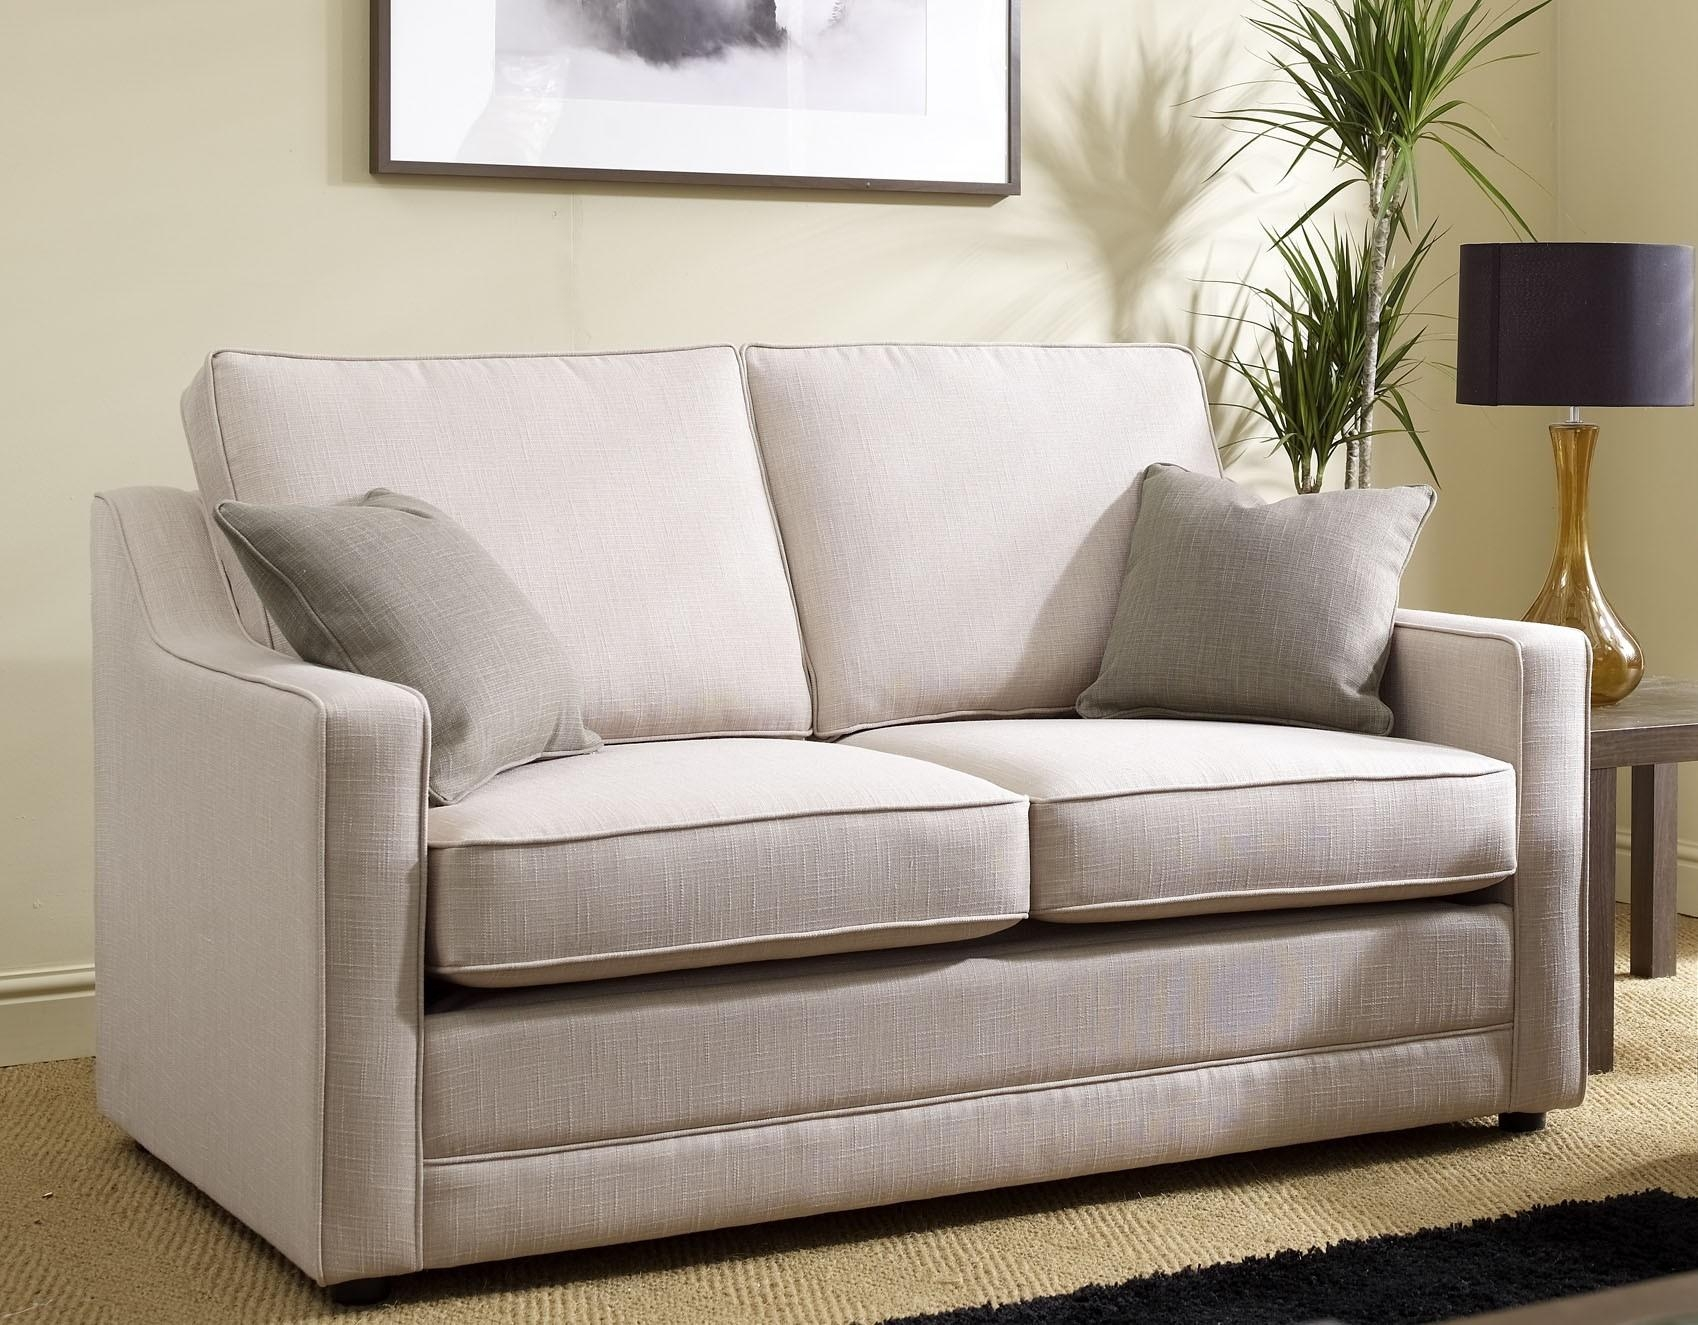 Small Sofa For Bedroom Sofa Beds For Small Rooms